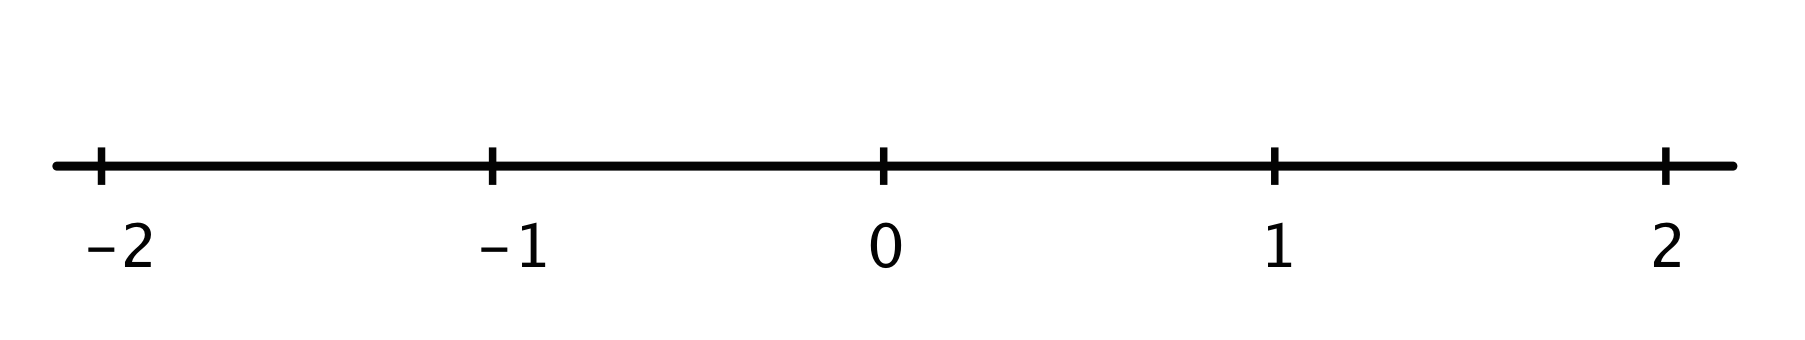 A number line with 5 evenly spaced tick marks. The numbers negative 2 through 2 are indicated.